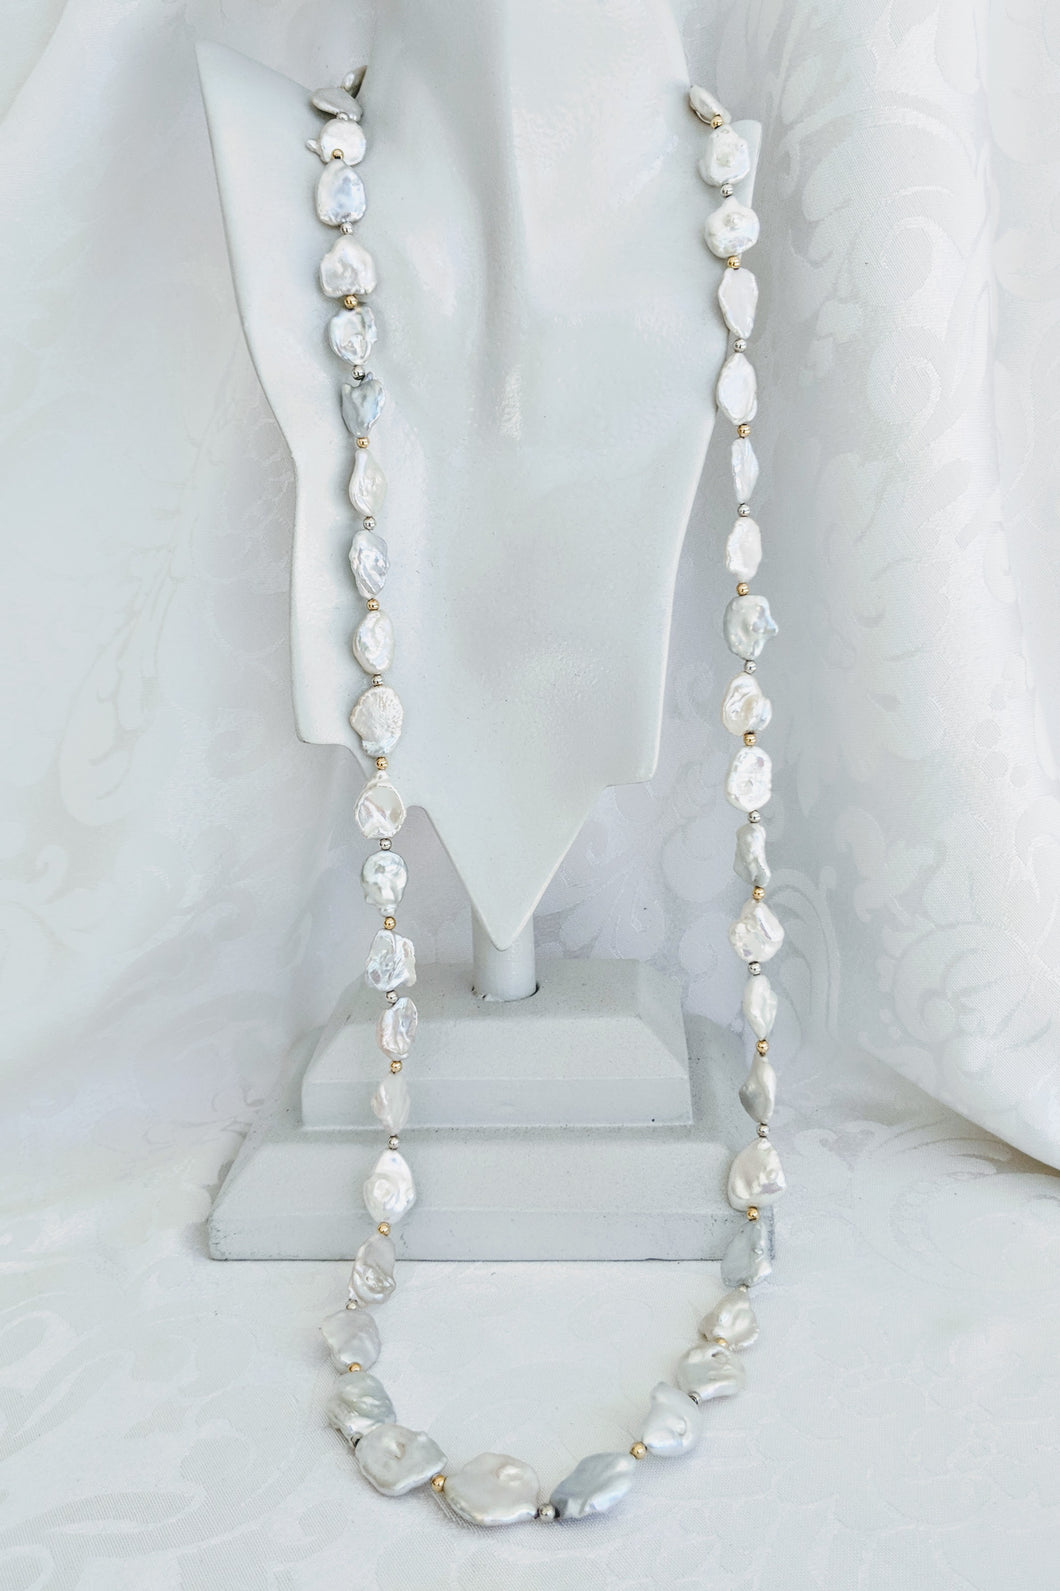 Long graduated Keshi pearl necklace